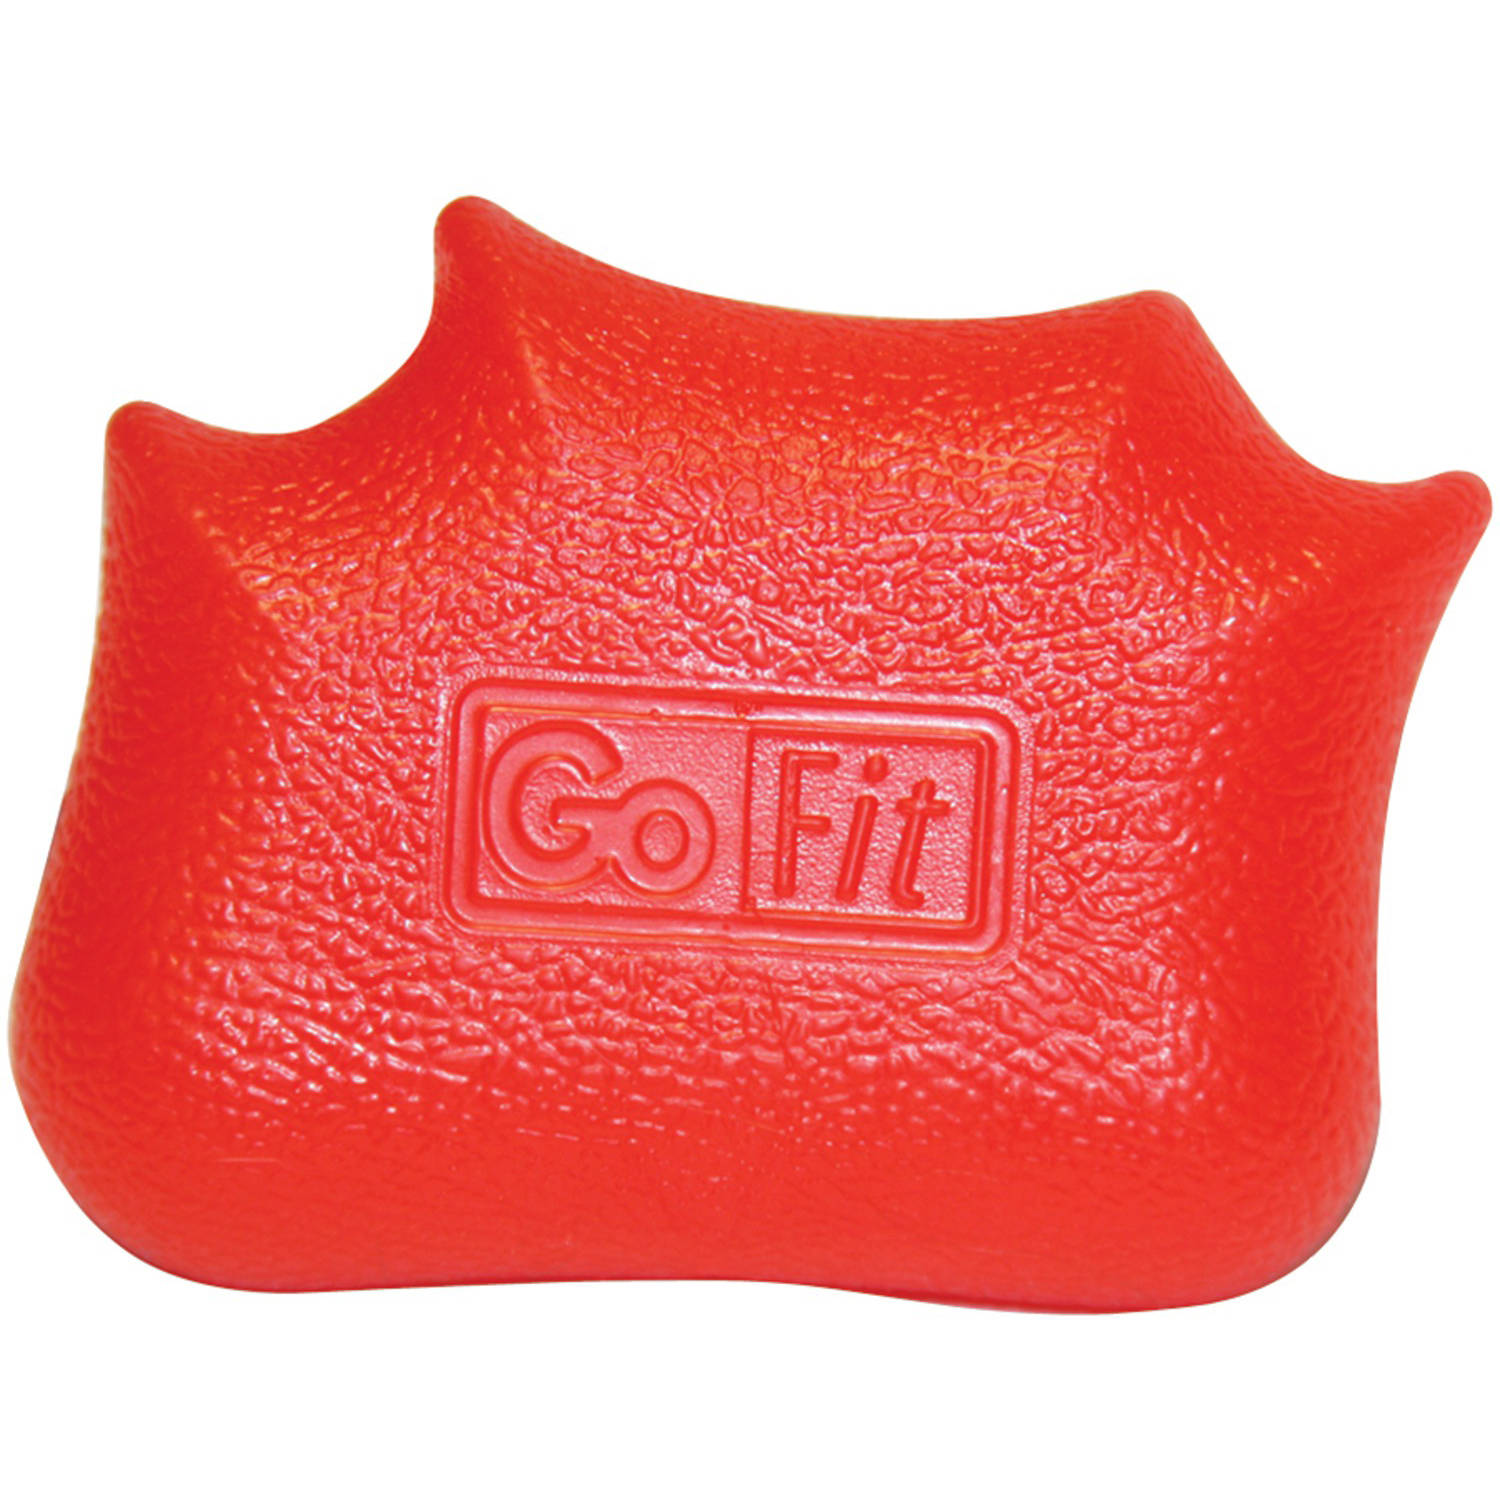 Gofit Gf-Gel-Frm Red Gel Hand Grip